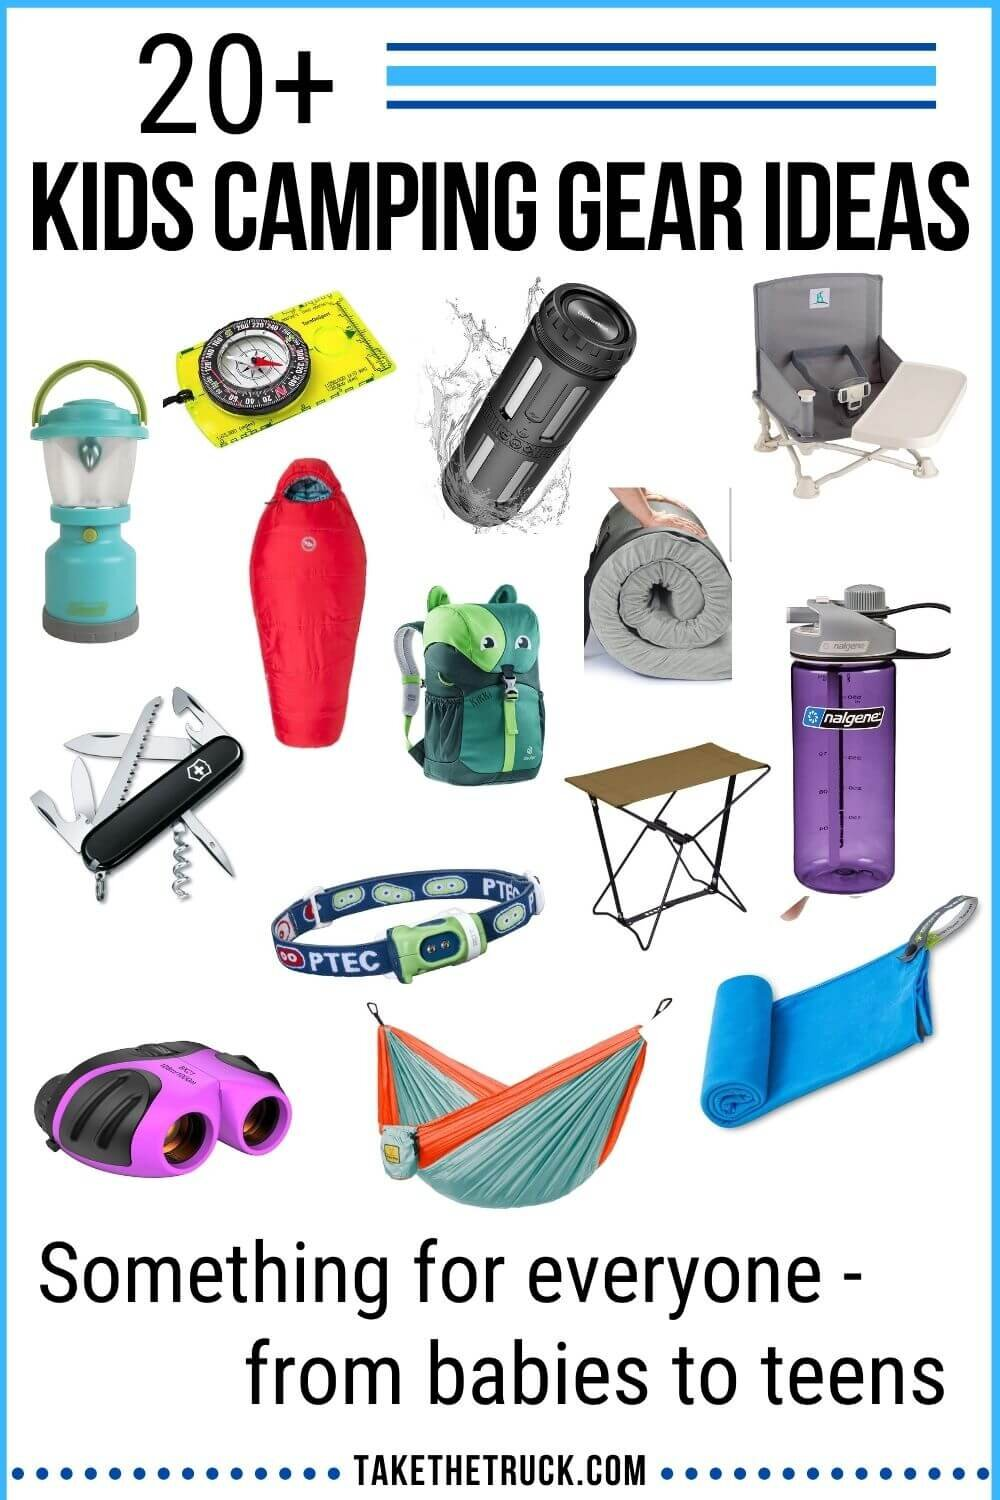 Looking for the best kids' camping gear to buy for the children in your life? Check out over 20 useful camping gear ideas that make great outdoor gear gifts for kids, from babies on up to teens.